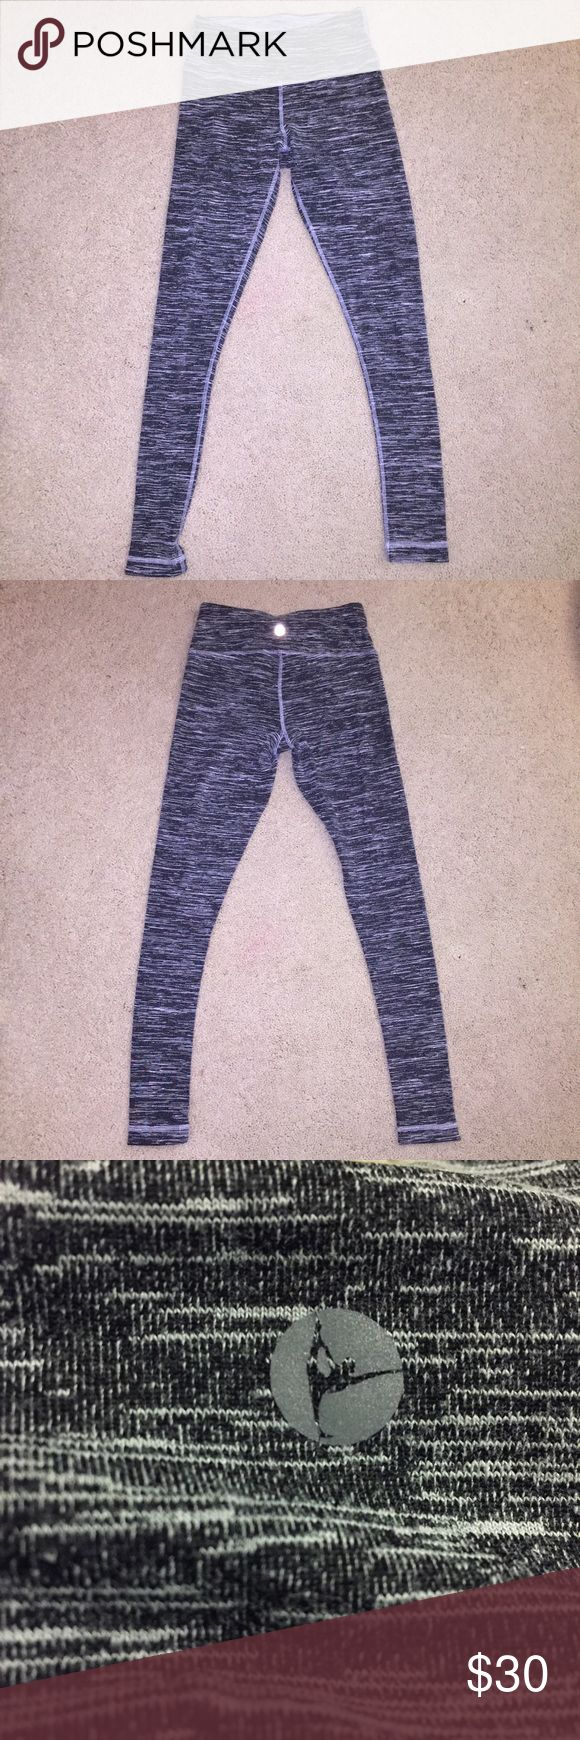 Gray Leggings 90 Degrees by Reflex brand! Just using Lululemon for exposure. I also have Lulu leggings and these are just as good! Super cute gray leggings! Excellent condition, I just don't wear them as much as I should :(. It has a little pocket in the front for keys. Thick material. lululemon athletica Pants Leggings